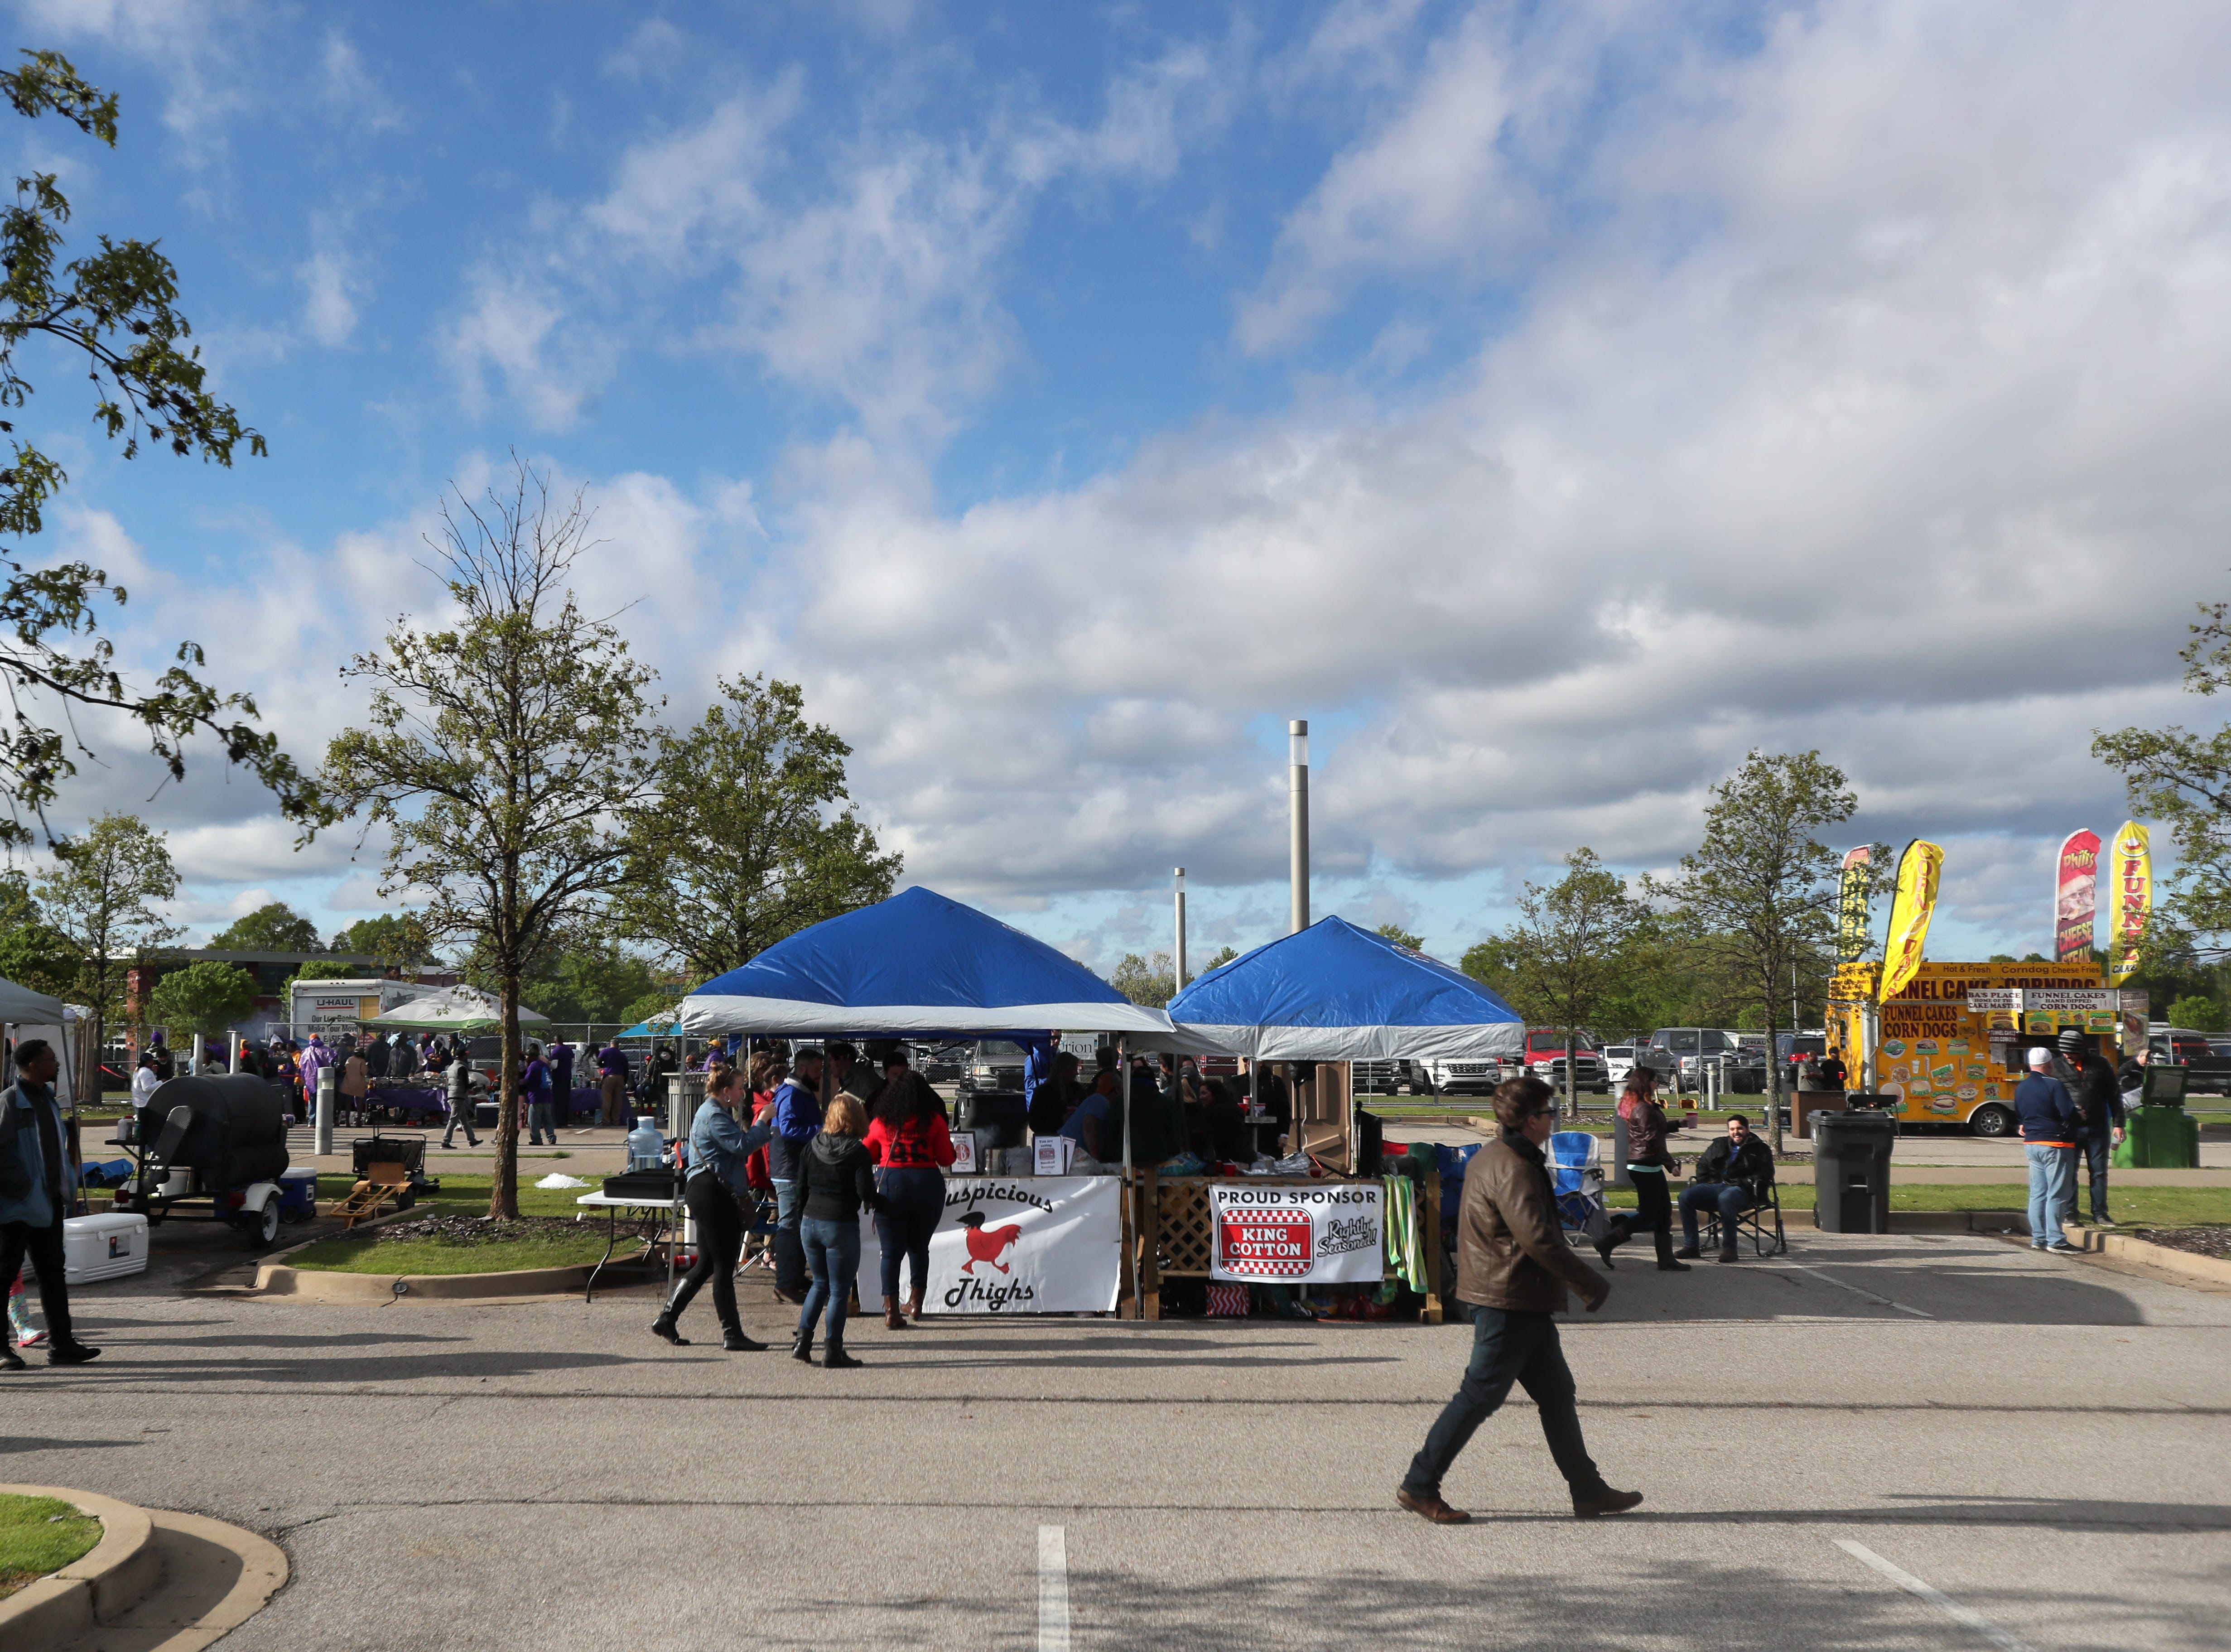 The 17th Annual Southern Hot Wing Festival on Tiger Lane at Liberty Bowl Memorial Stadium on Sunday, April 14, 2019.